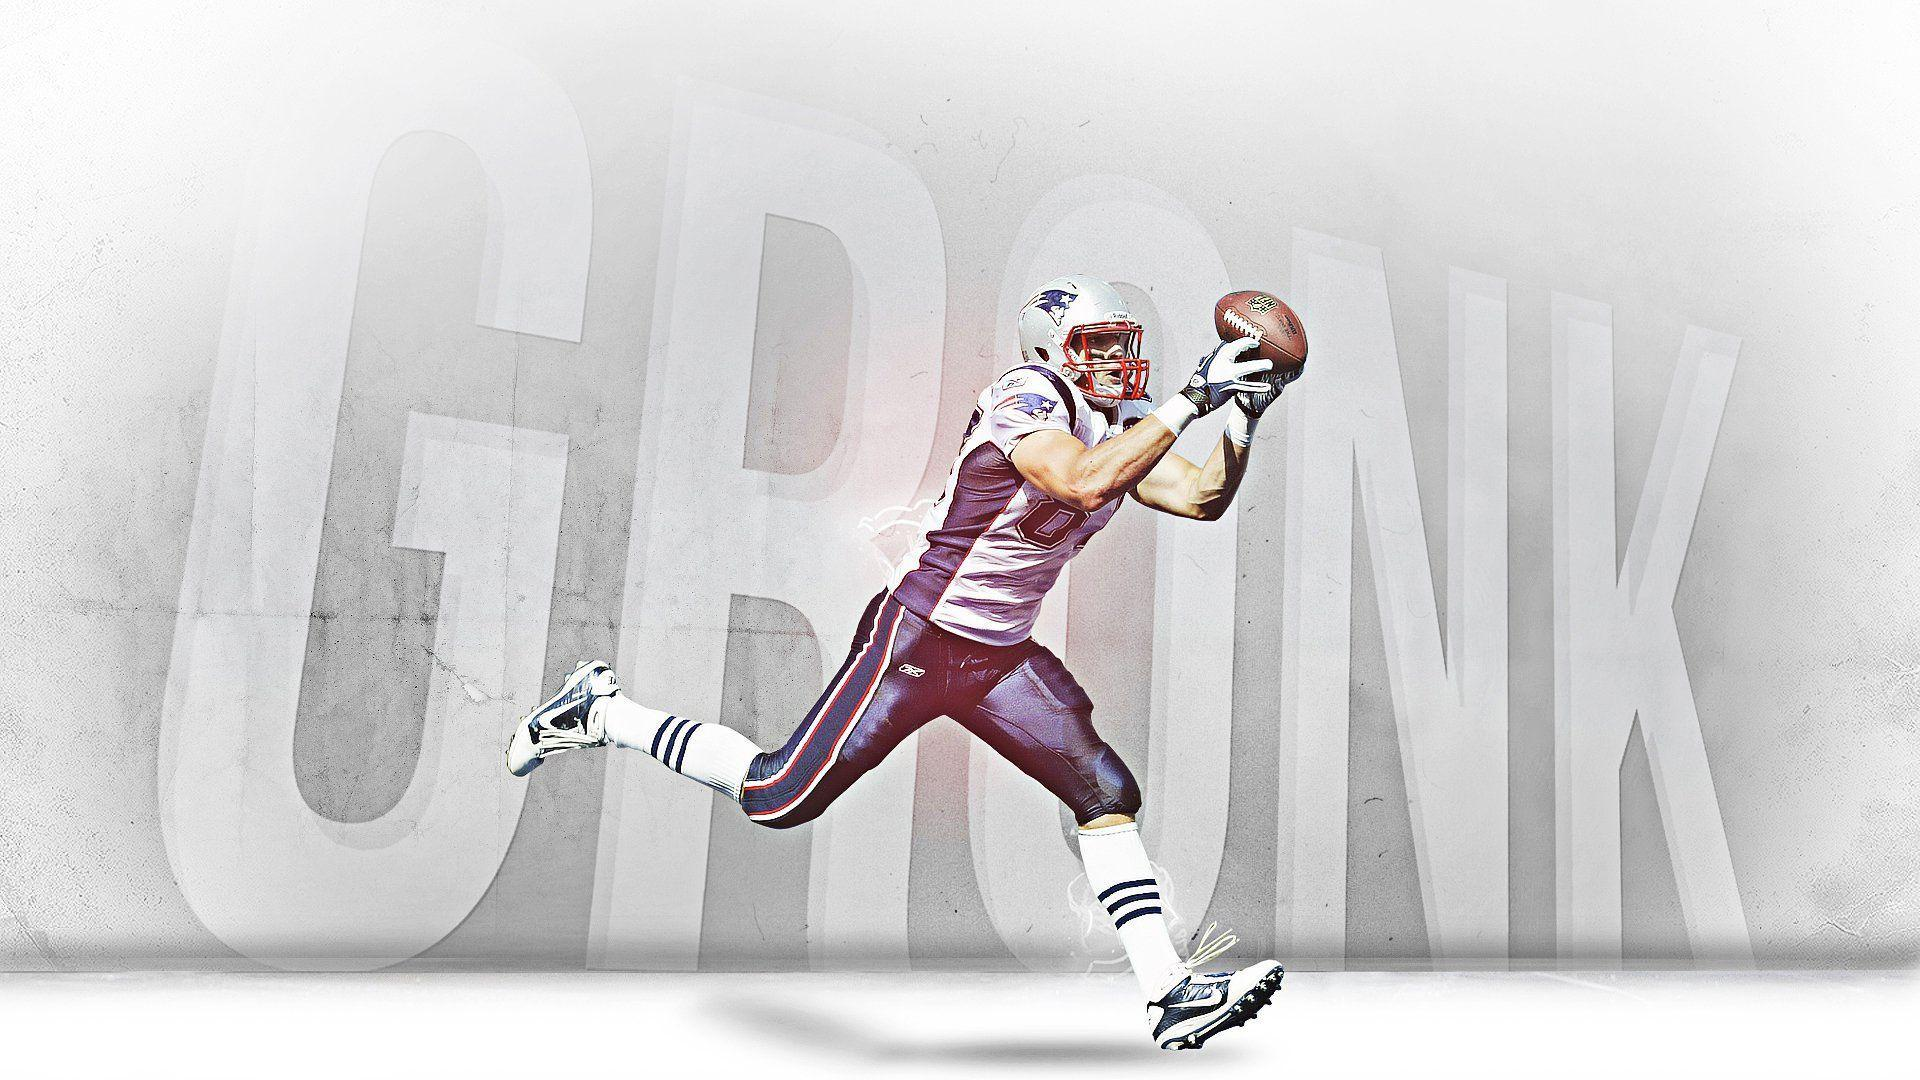 Rob Gronkowski HD wallpapers free download